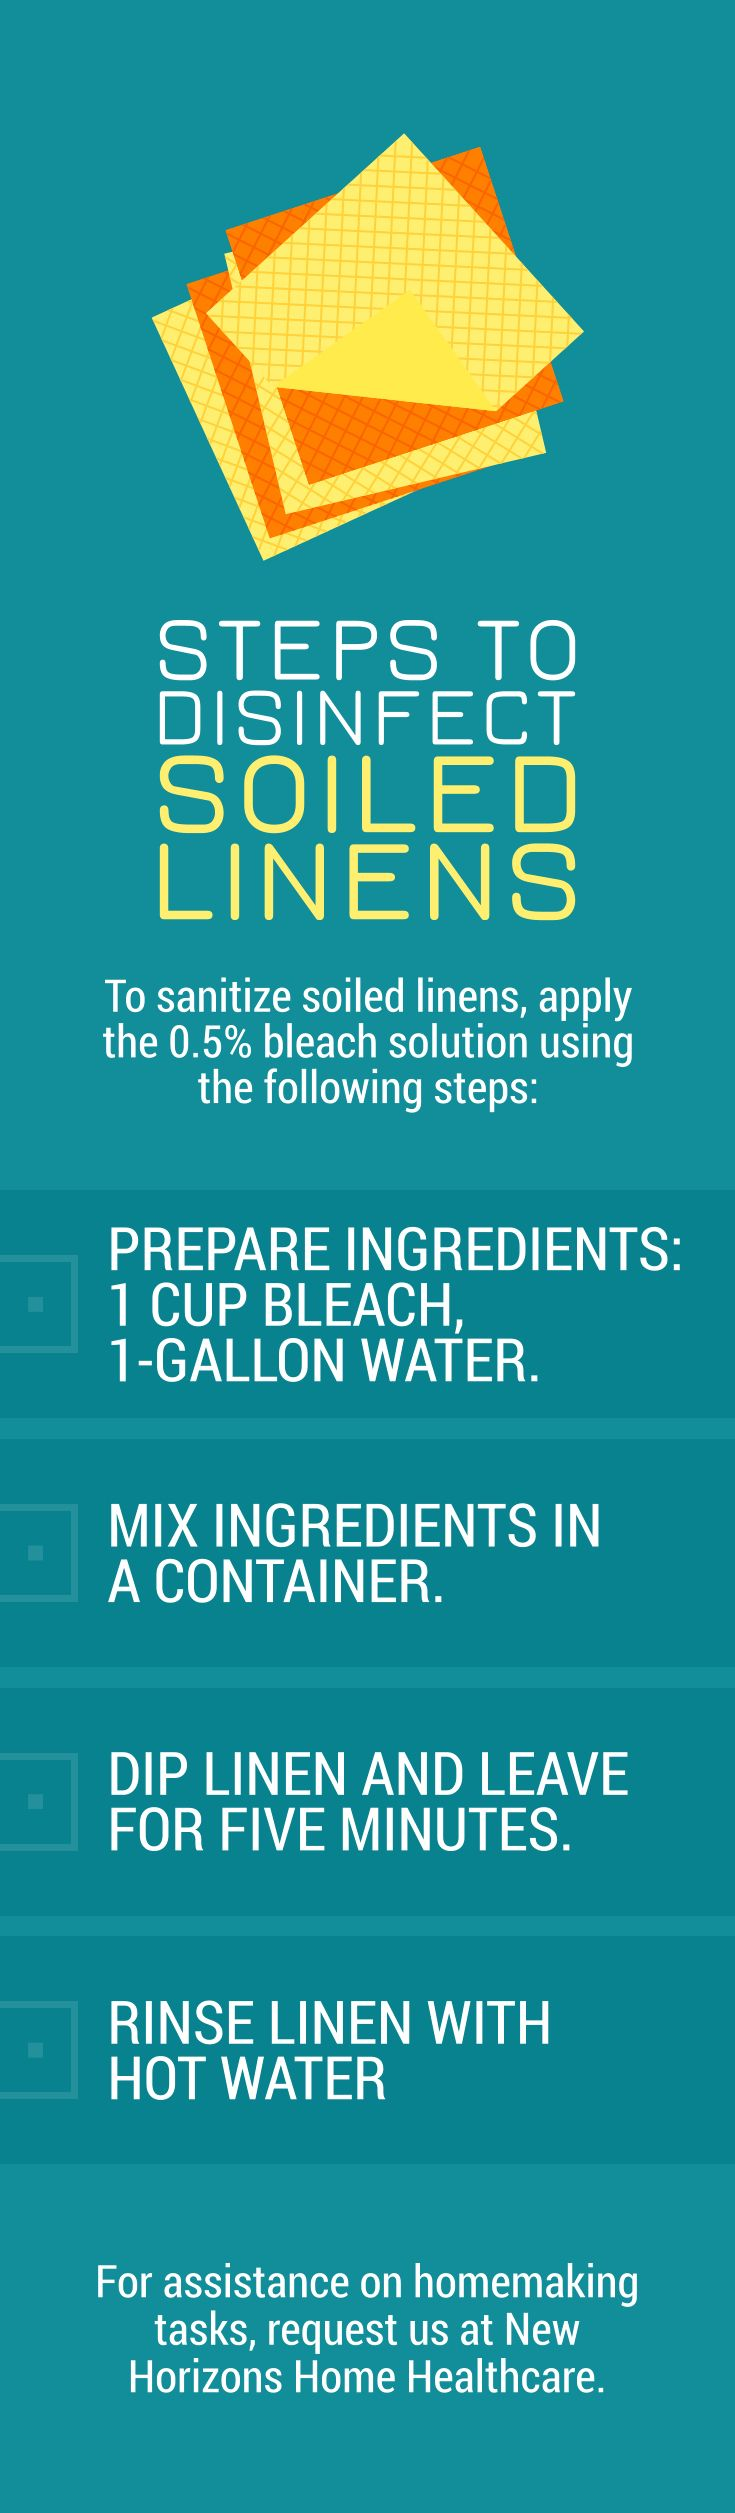 Steps to Disinfect Soiled Linens soiledlinens